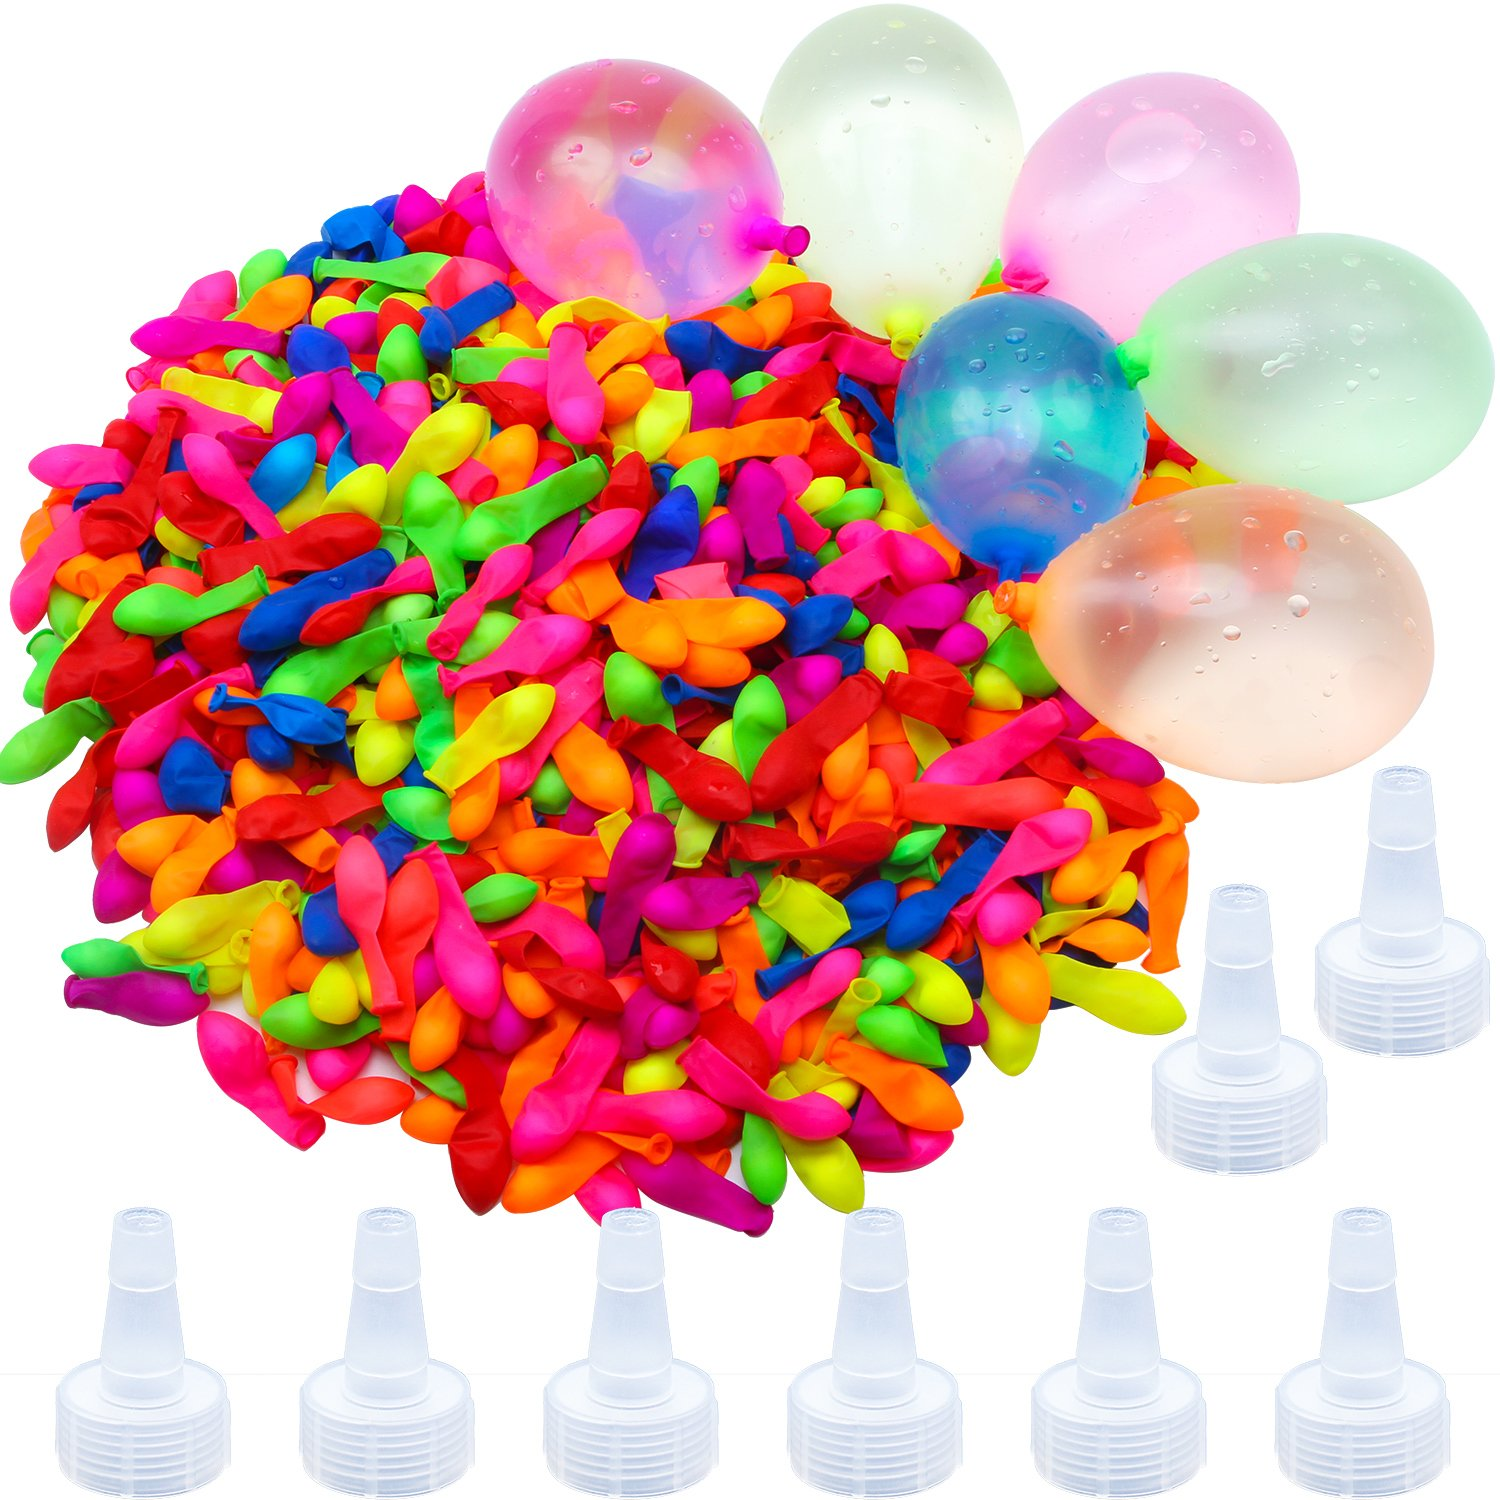 Aneco 1000 Pack Latex Water Balloons Bomb Self-sealing with 8 Hose Nozzle for Kids Adults Outdoor Water Bomb Fight Games